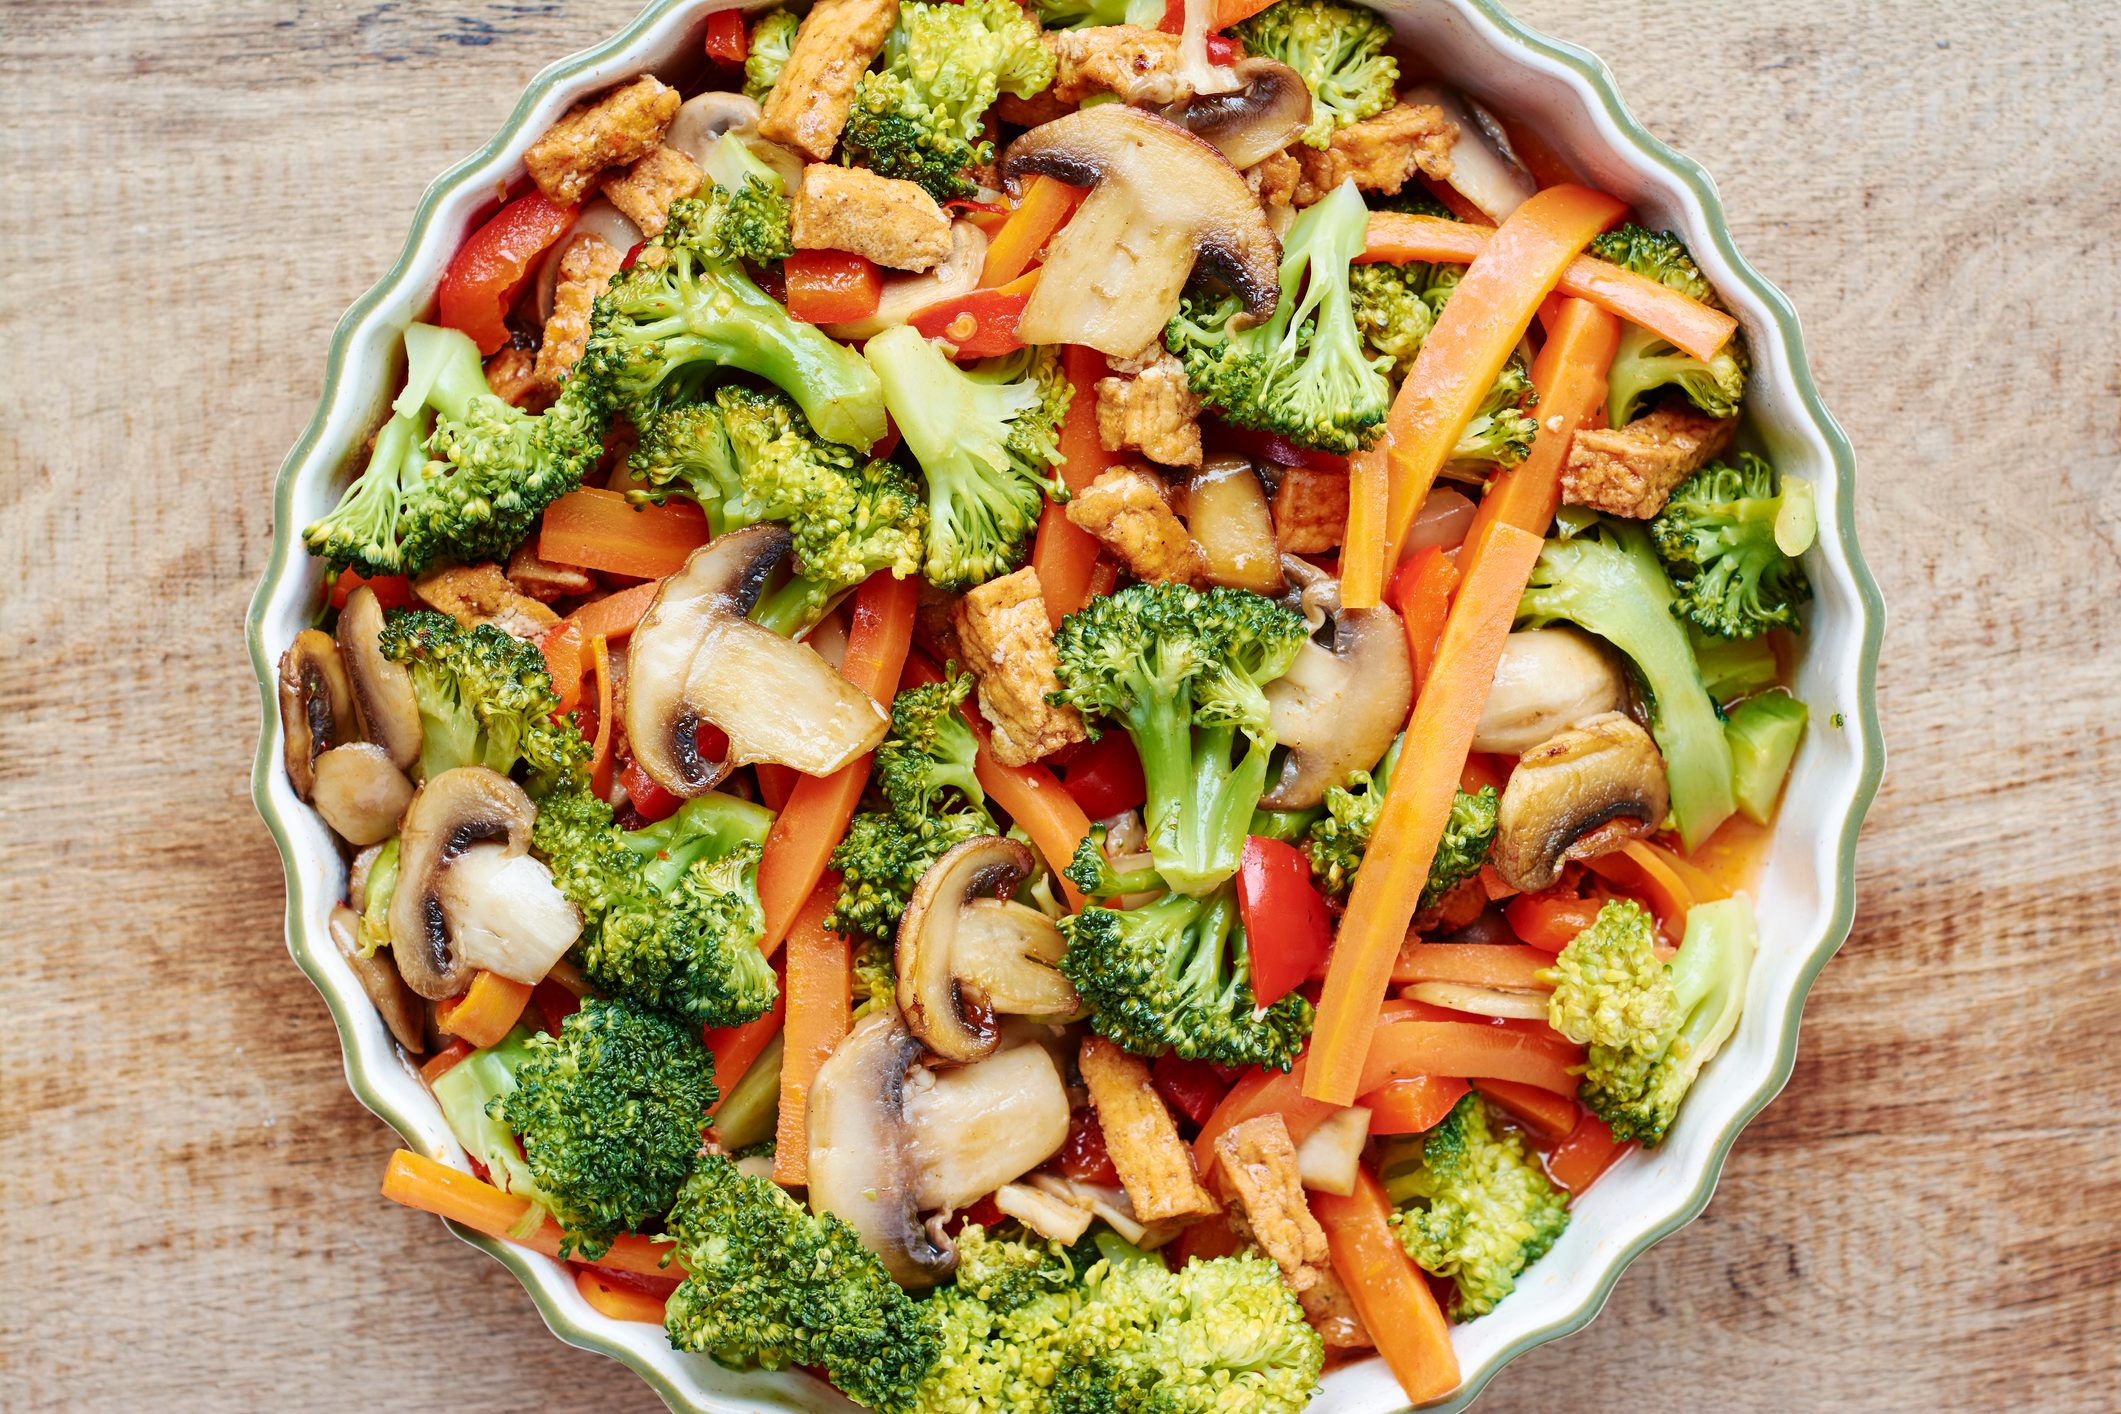 Broccoli, carrot, mushroom stir fry with tofu.